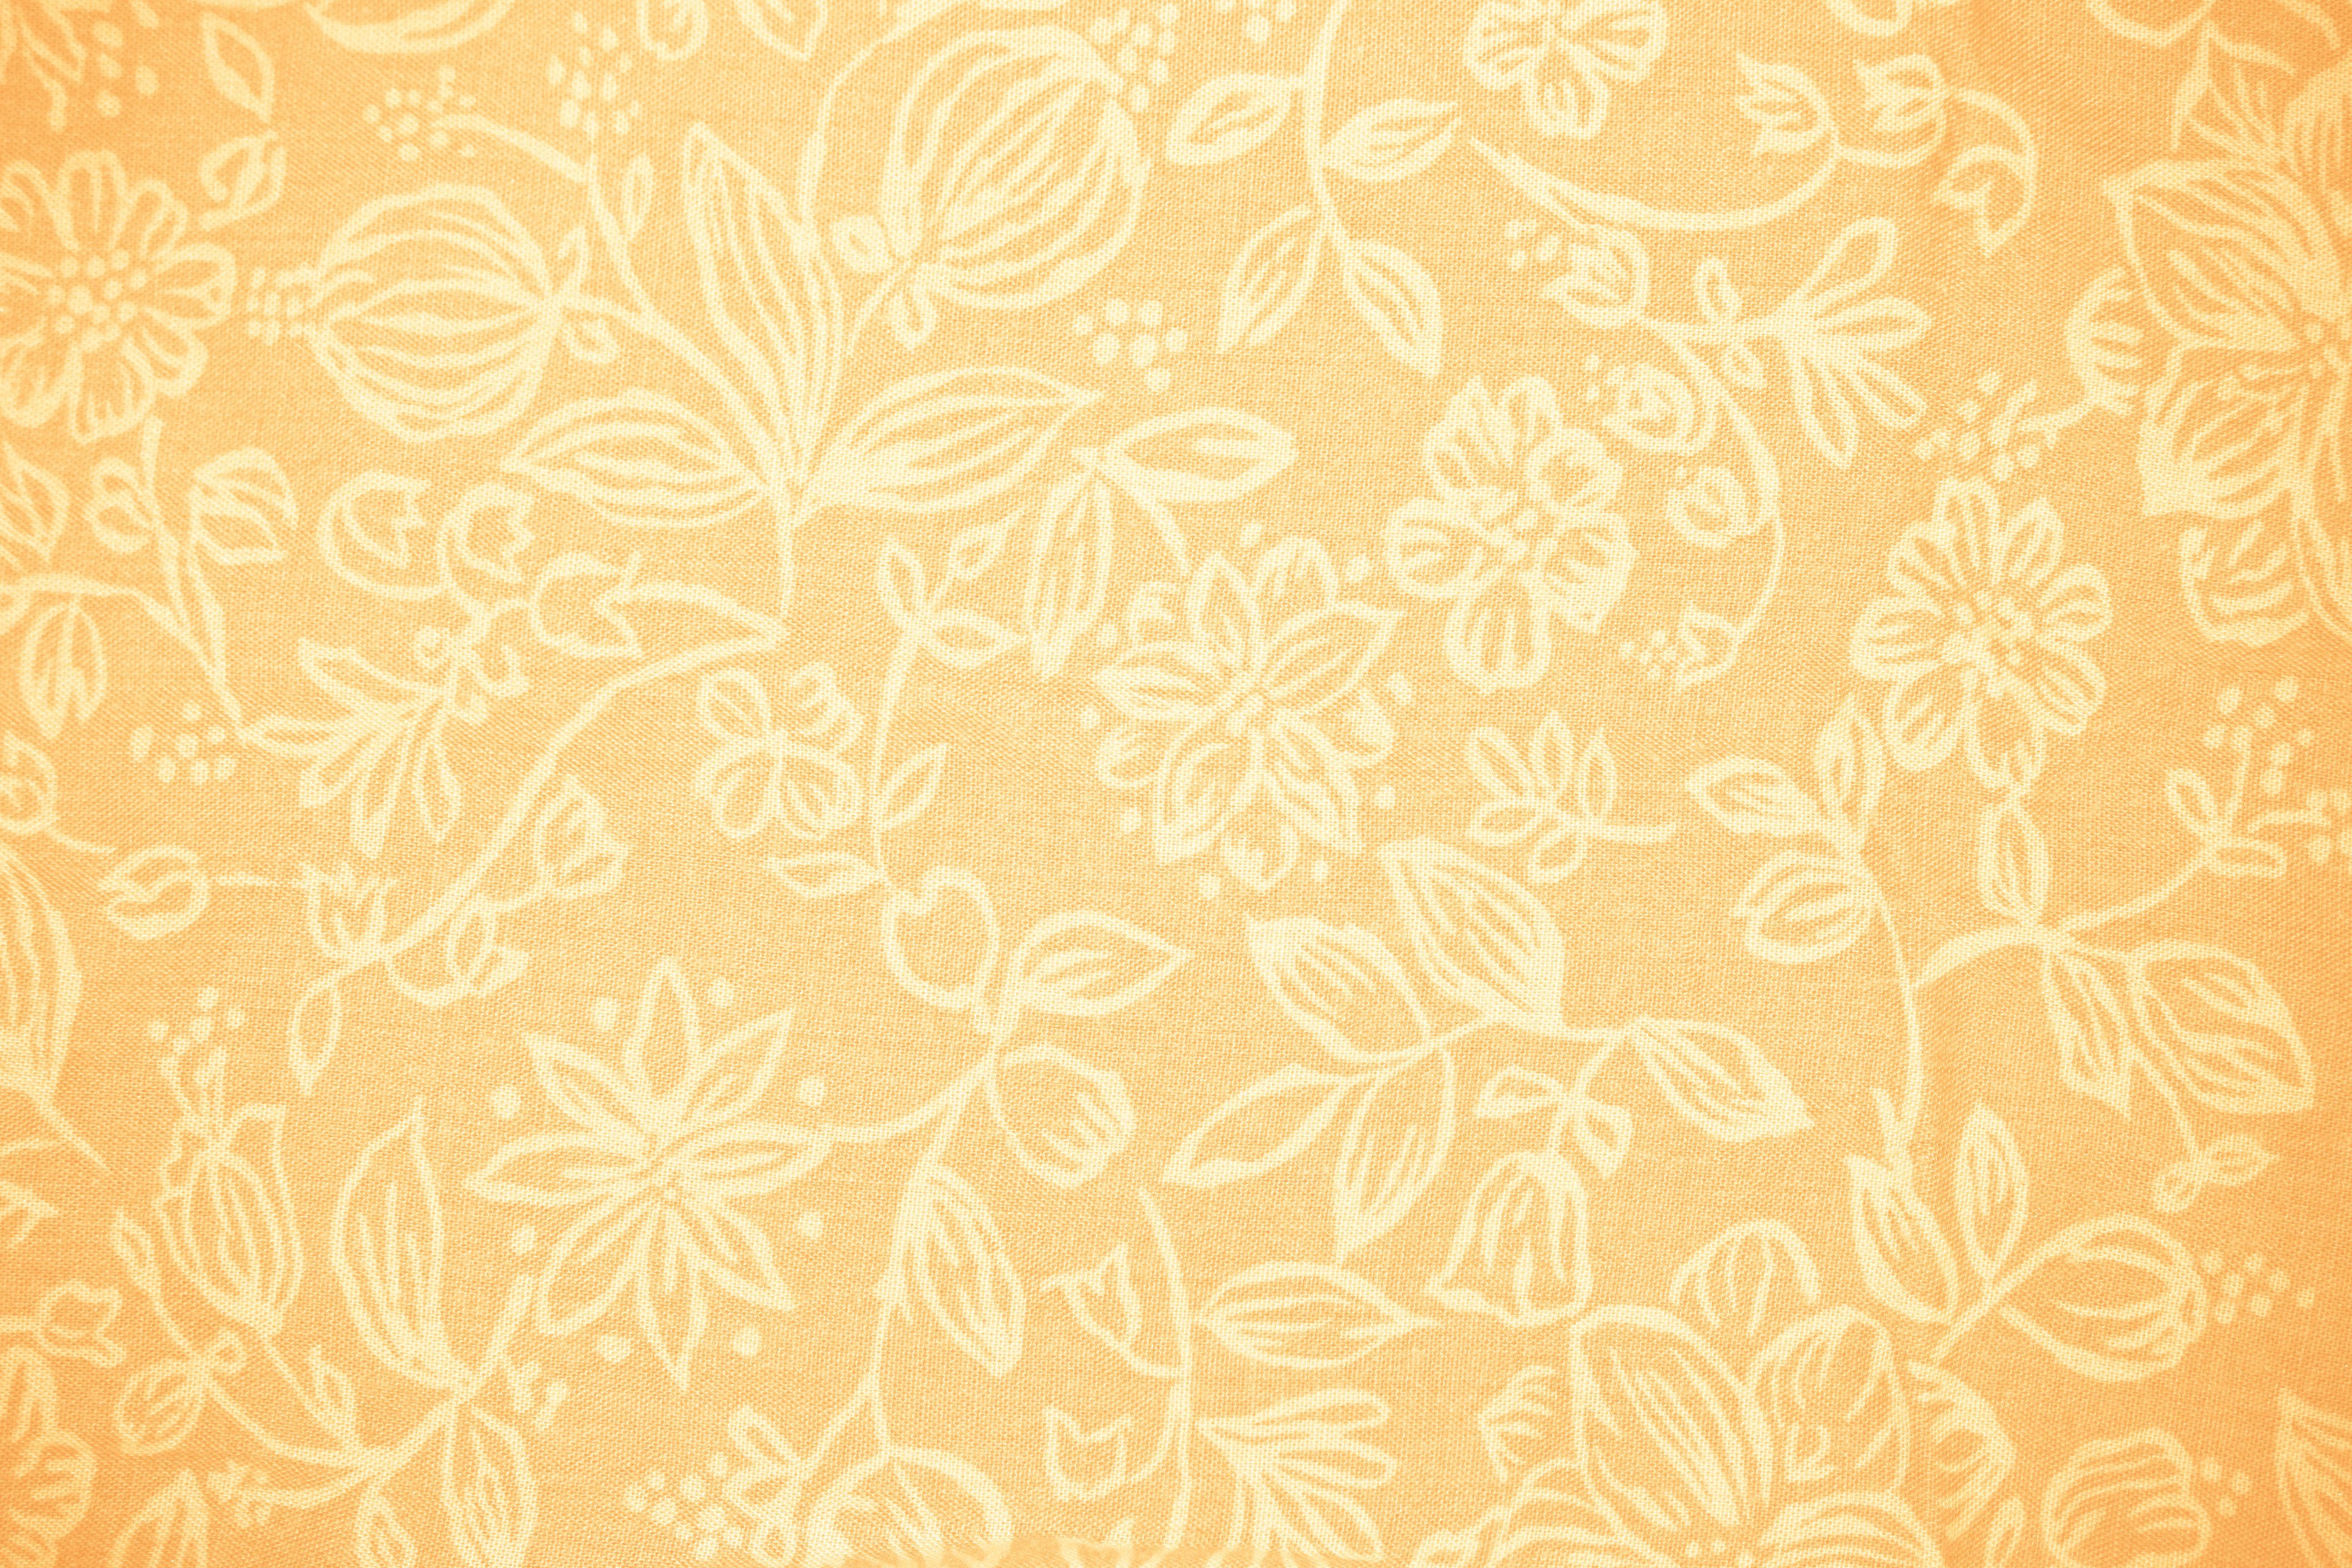 Peach Colored Fabric with Floral Pattern Texture Picture 3888x2592